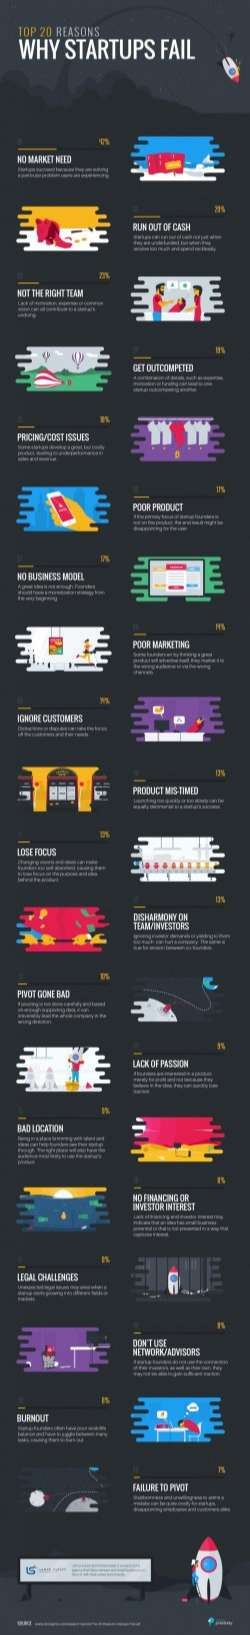 Top 20 Reasons Why Startups Fail [Infographic]